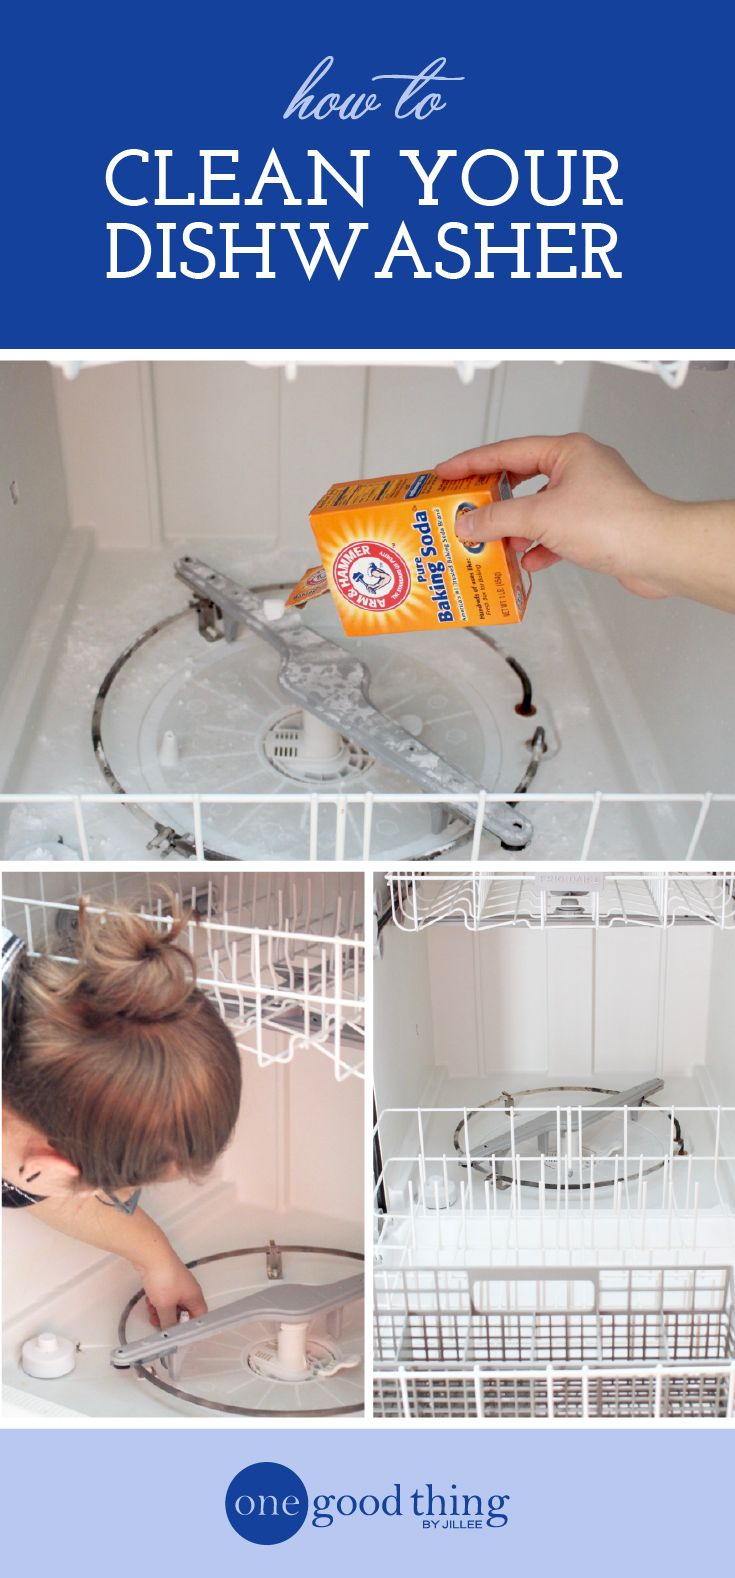 http://www.onegoodthingbyjillee.com/how-to-clean-your-dishwasher-in-3-easy-steps?utm_source=DailyRSSNewsletter